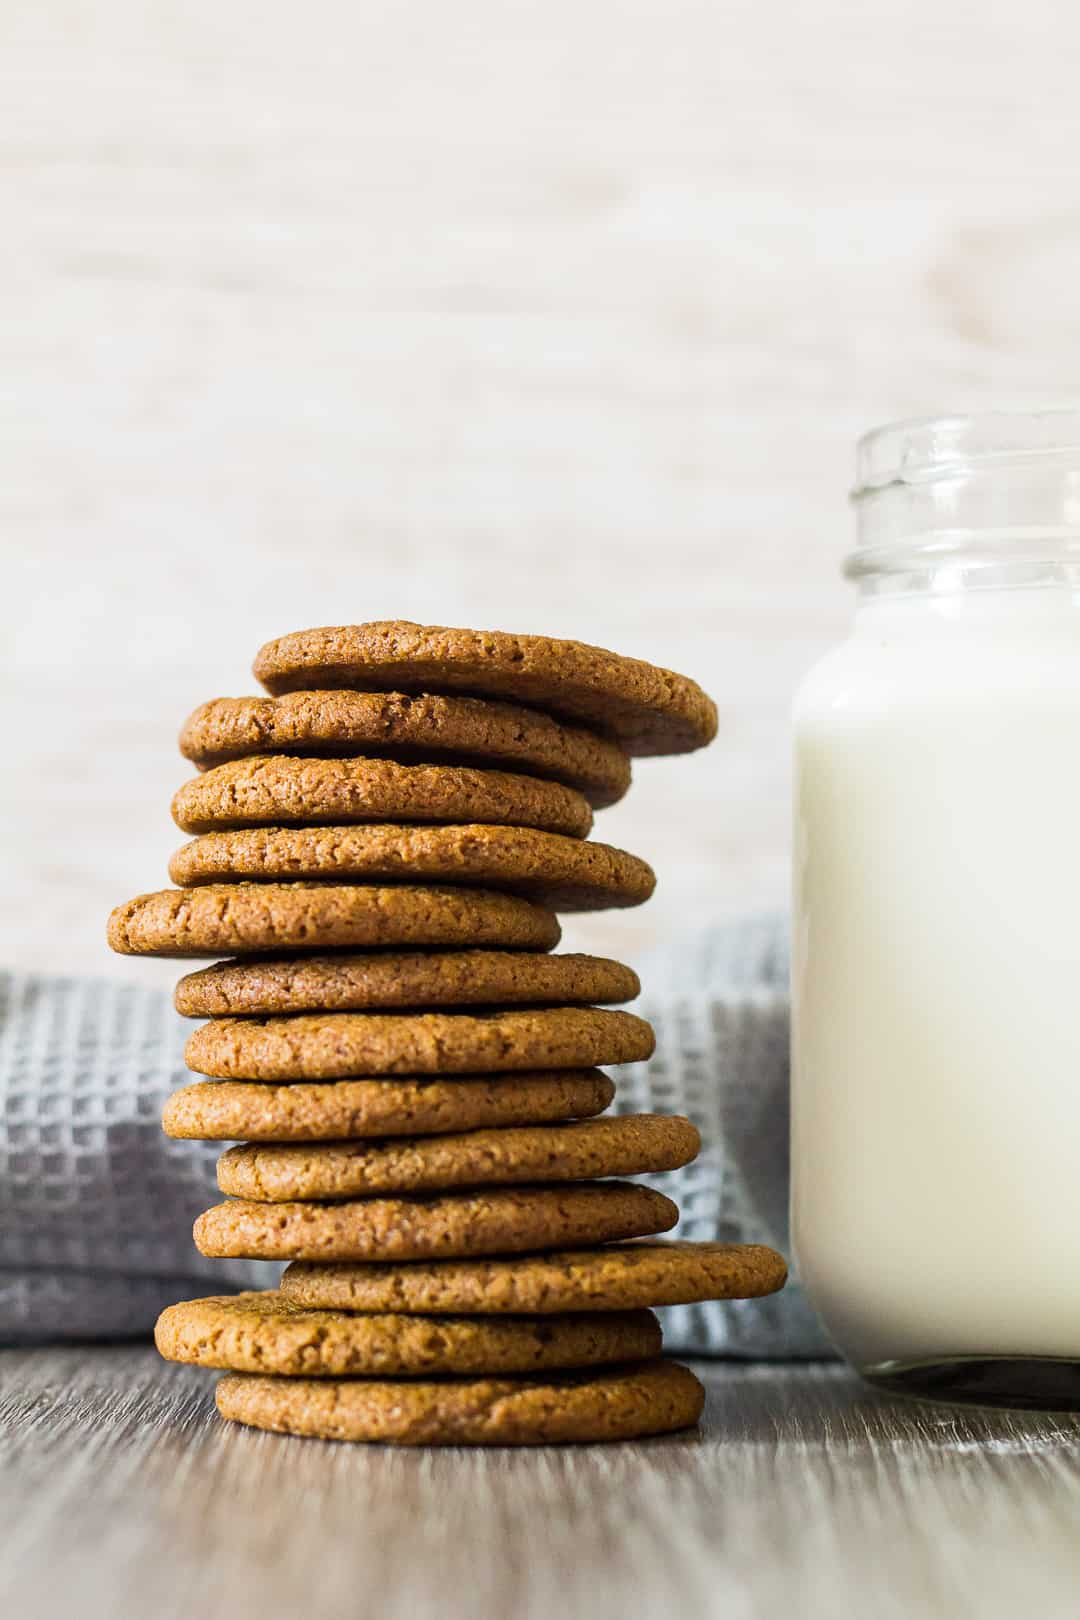 A tall stack of Homemade Gingernut Cookies next to a glass of milk.